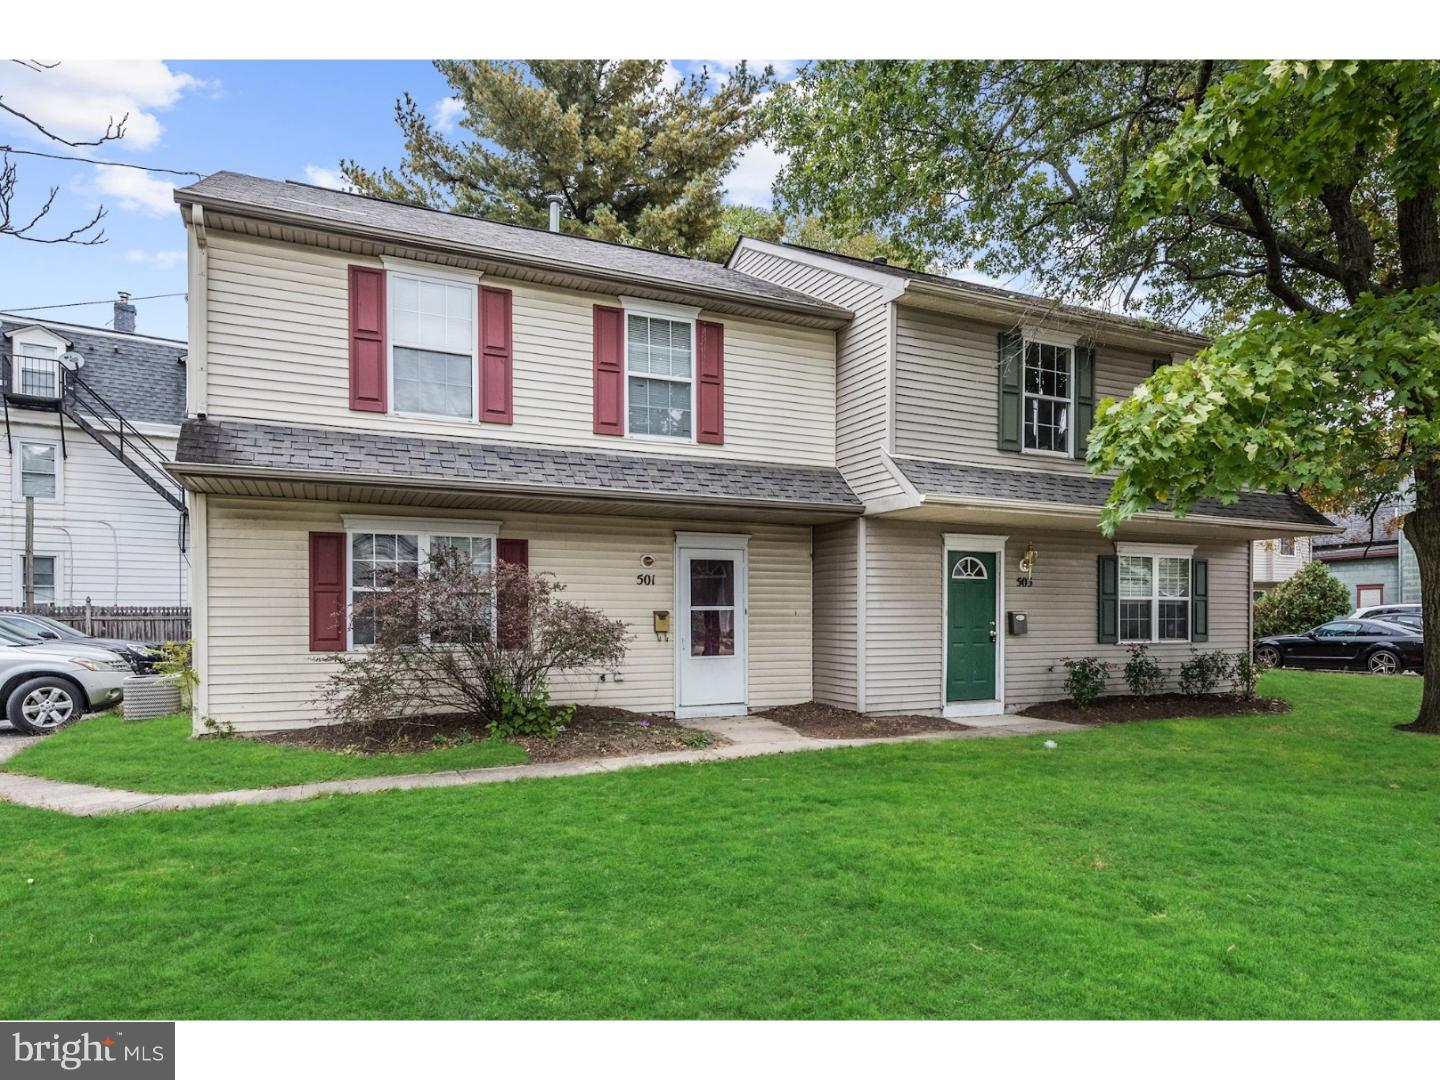 Single Family Home for Sale at 501 S FAIRVIEW Street Riverside, New Jersey 08075 United StatesMunicipality: Riverside